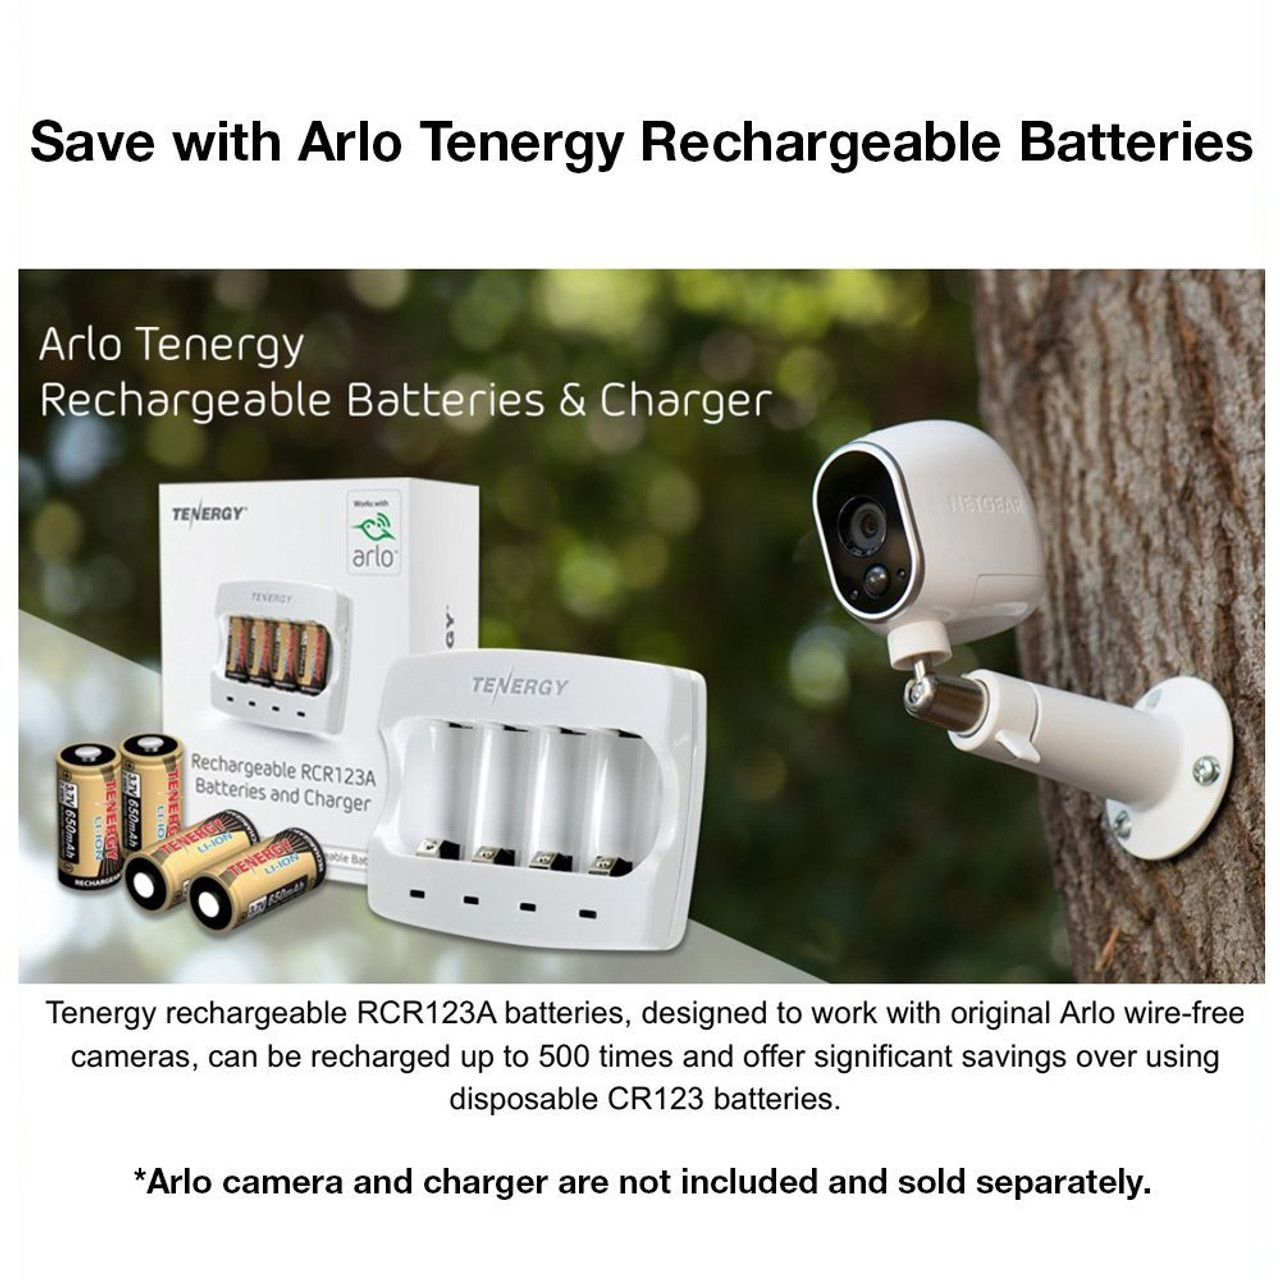 Rechargeable Batteries (24-Pack) Arlo Certified Li-ion 3.7V 650mAh for Arlo Smart Security Camera, UL & UN Certified